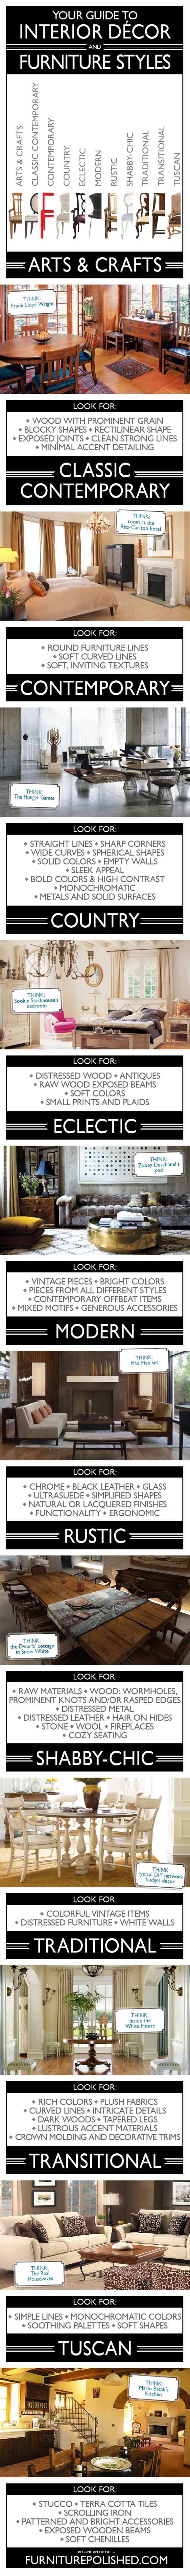 The Ultimate Infographic for understanding interior design/furniture styles